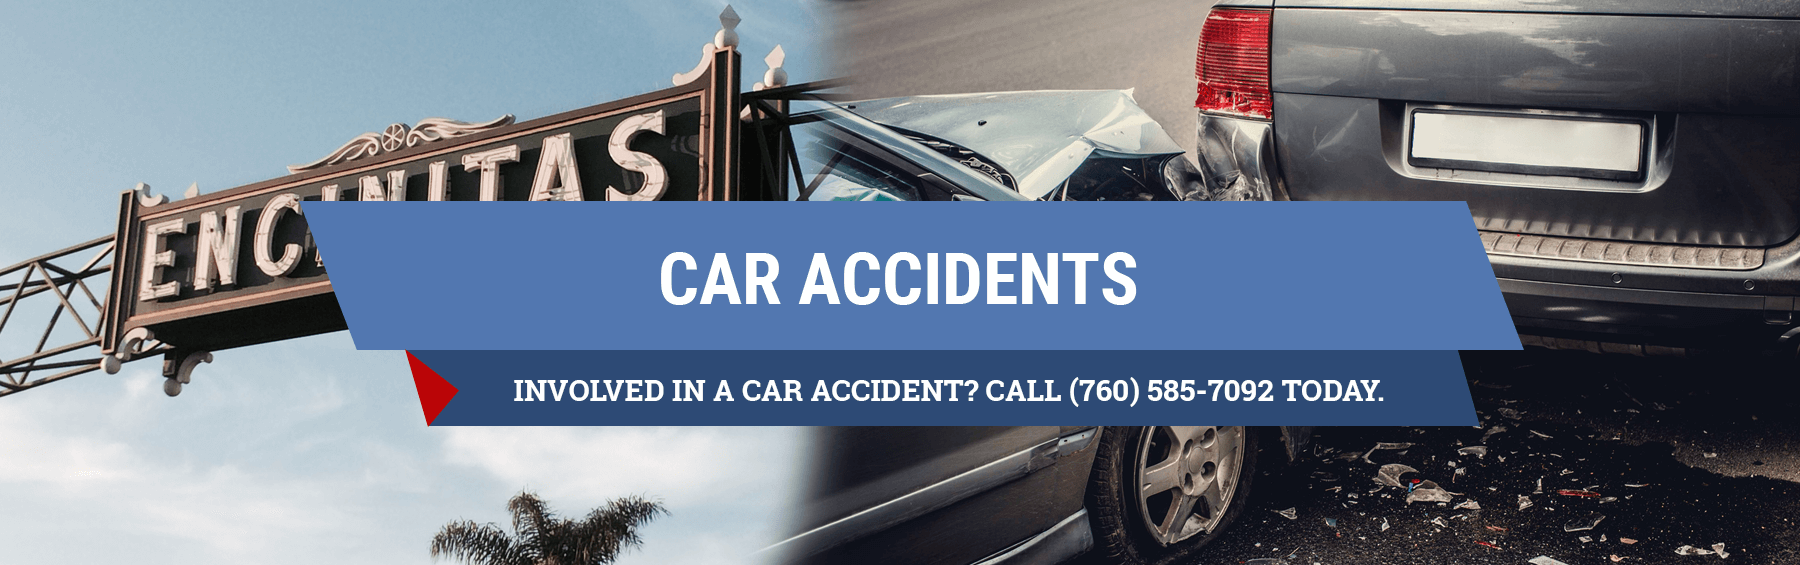 Encinitas Car Accident Lawyers | Skolnick Law Group | Free Consultation